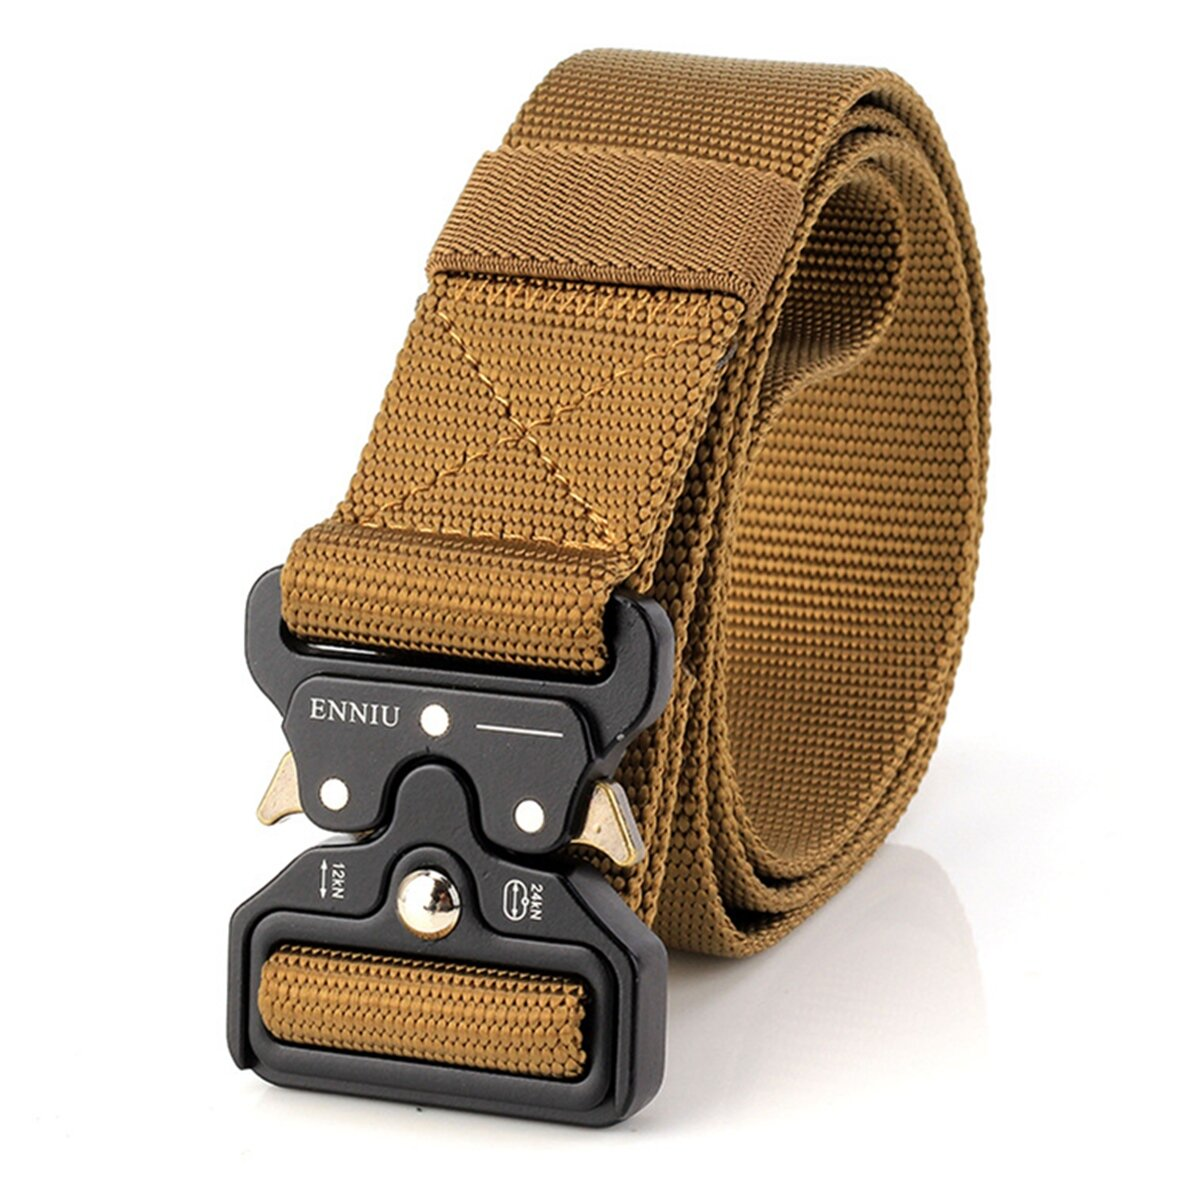 Survival Military Nylon Belts For Men Tactical Belt Waist Belt Strap Military Emergency EDC Gadget